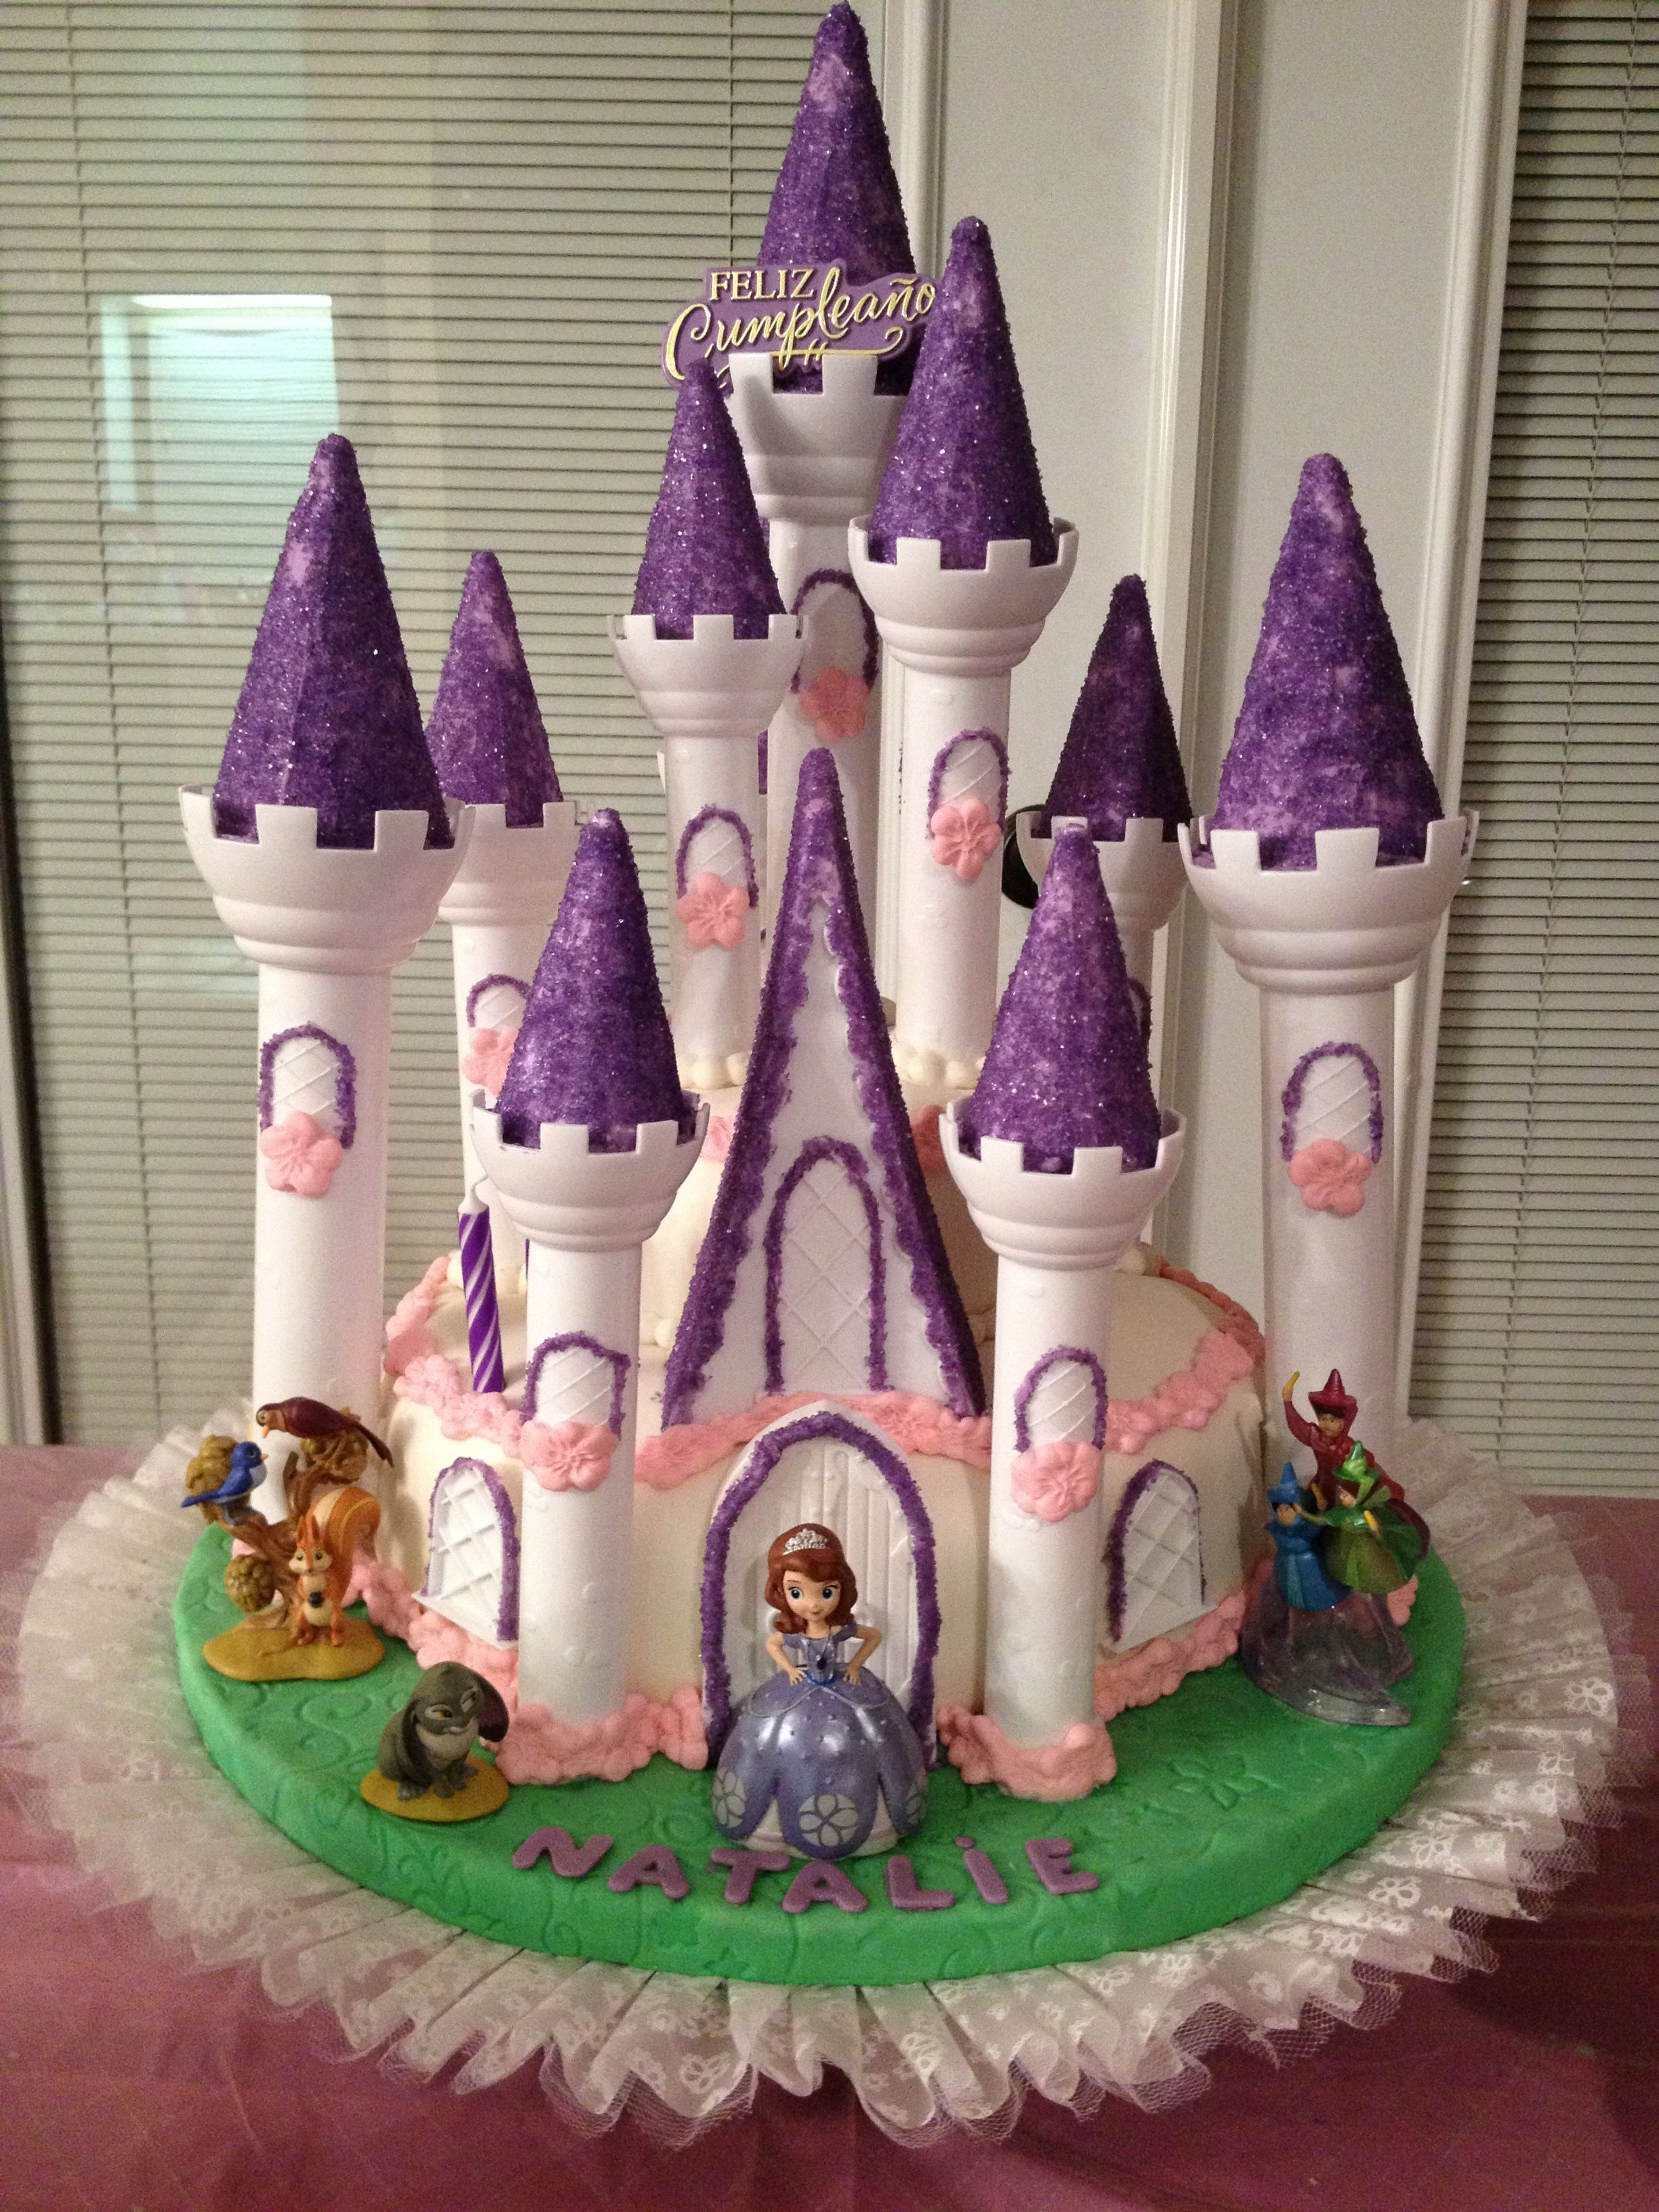 sofia the first castle cake i made for my daughter's 2nd birthday